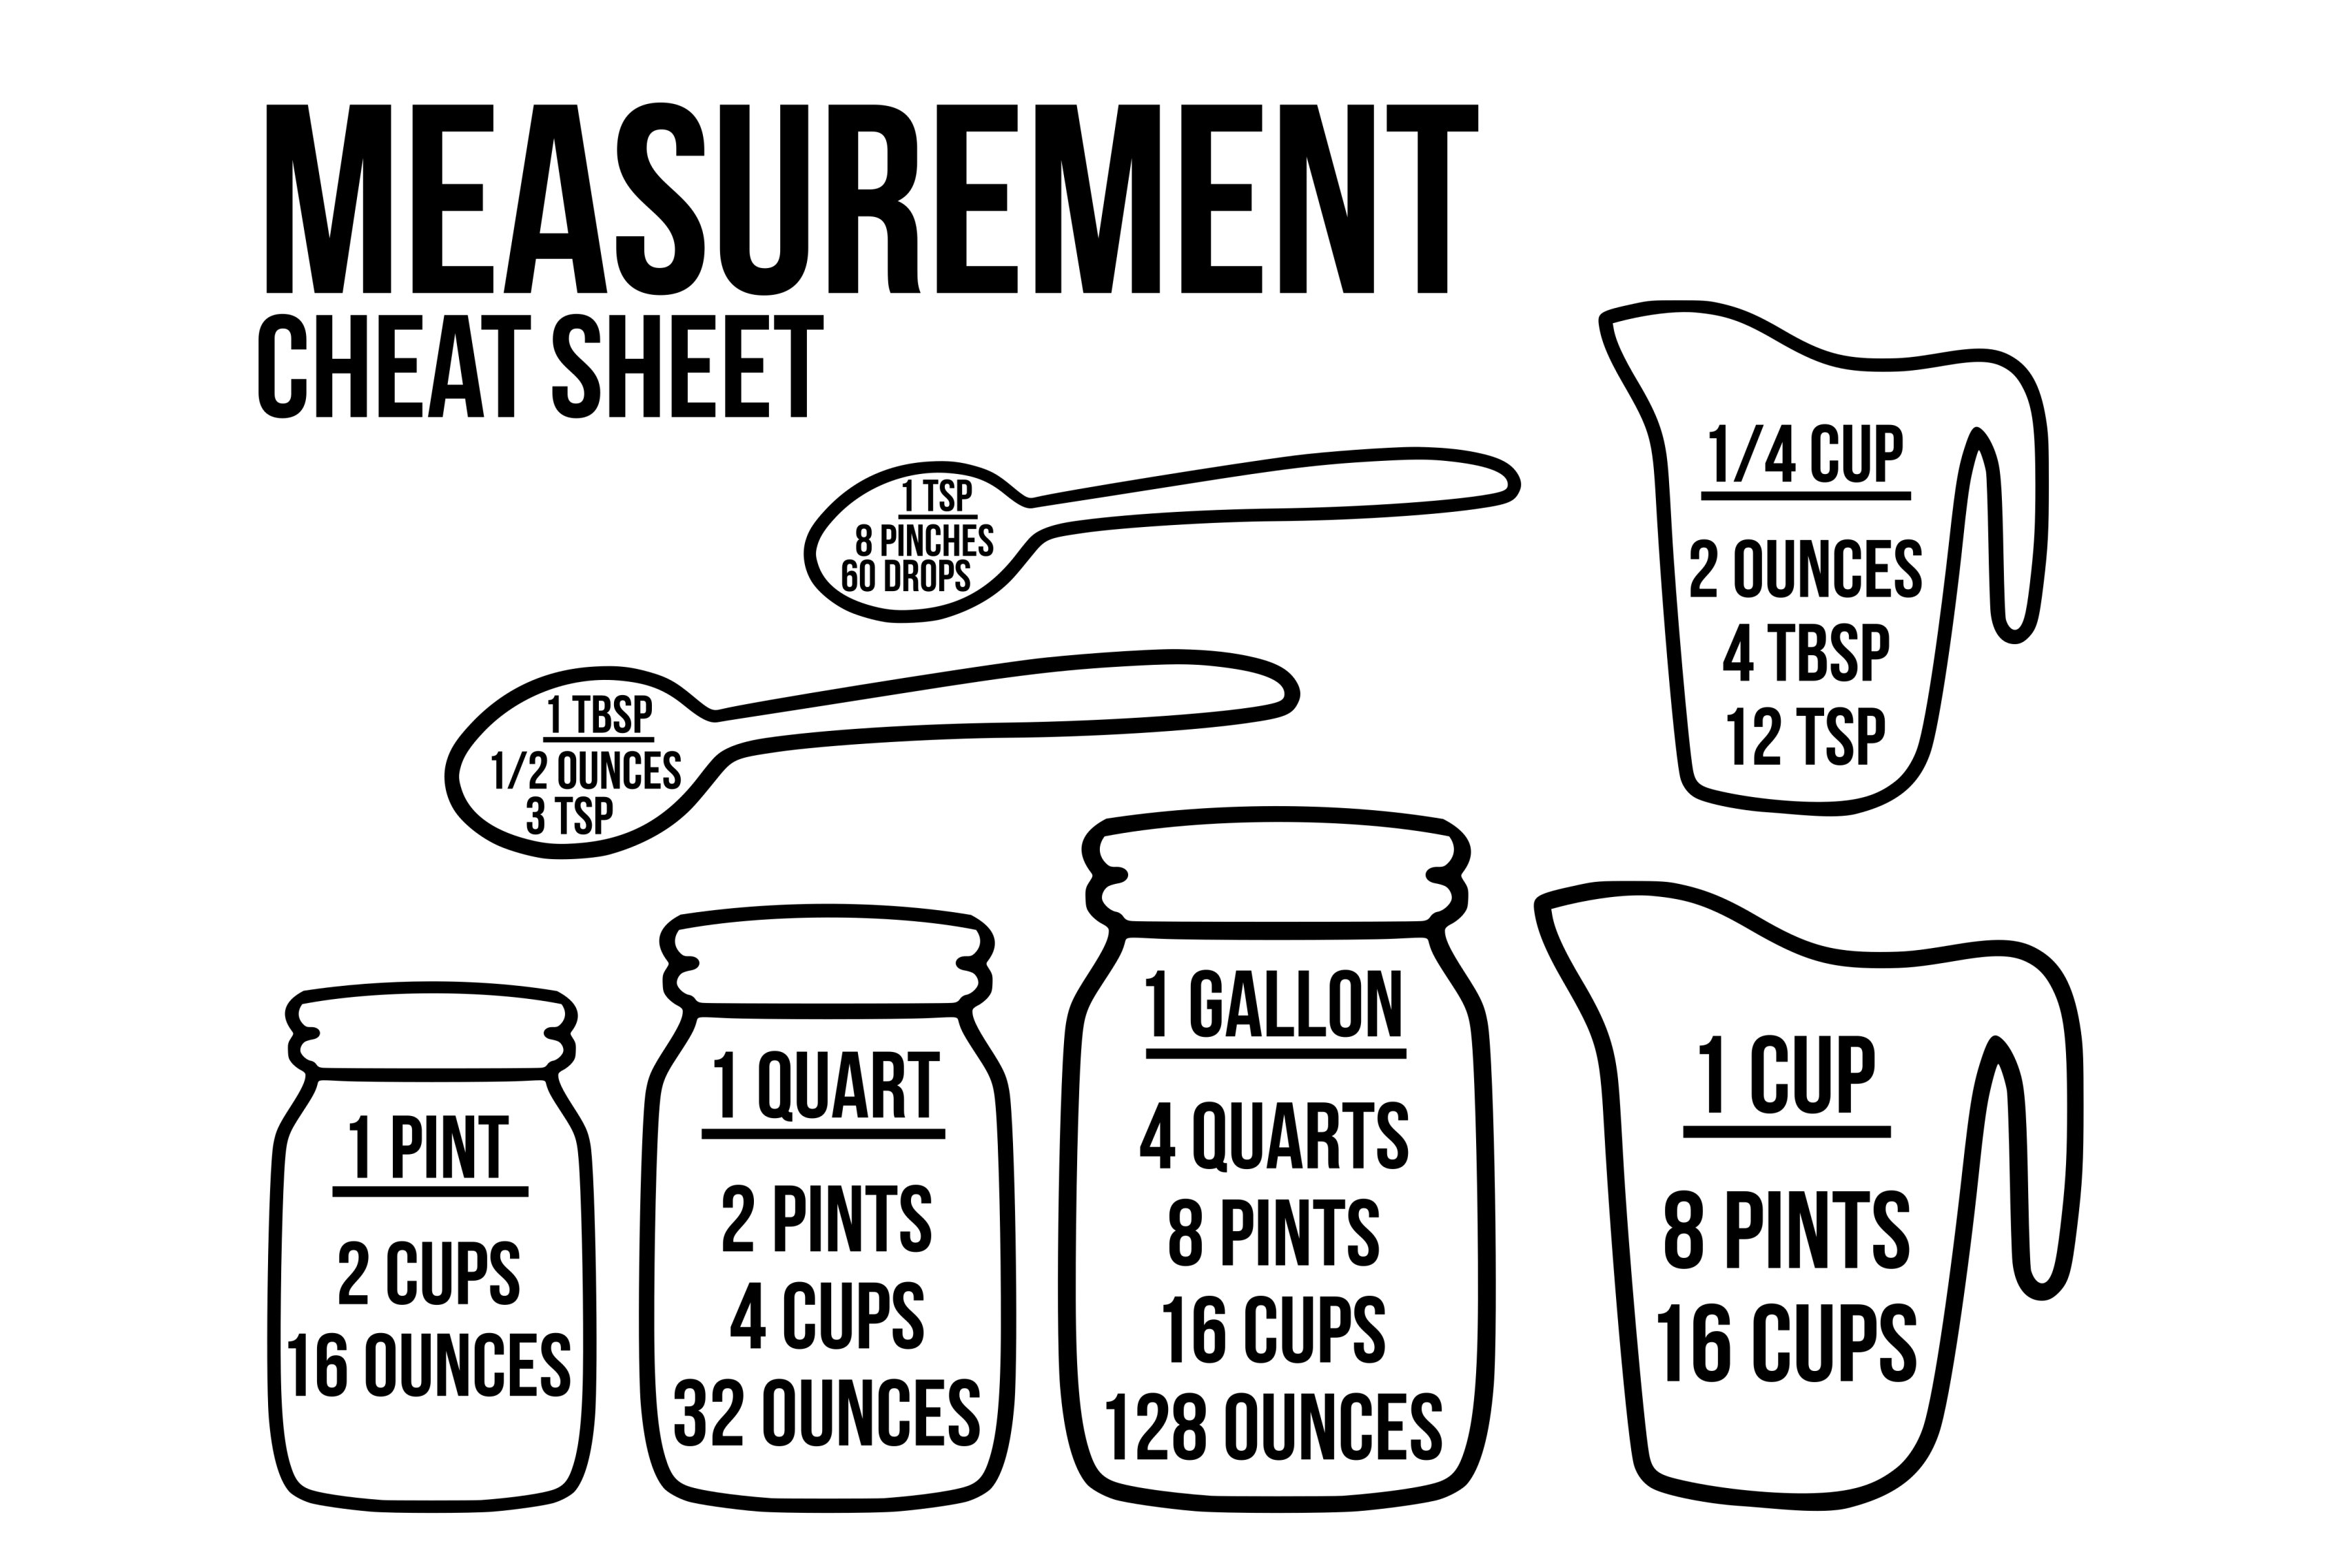 Measurement cheat sheet svg bundle ~ Graphic Objects